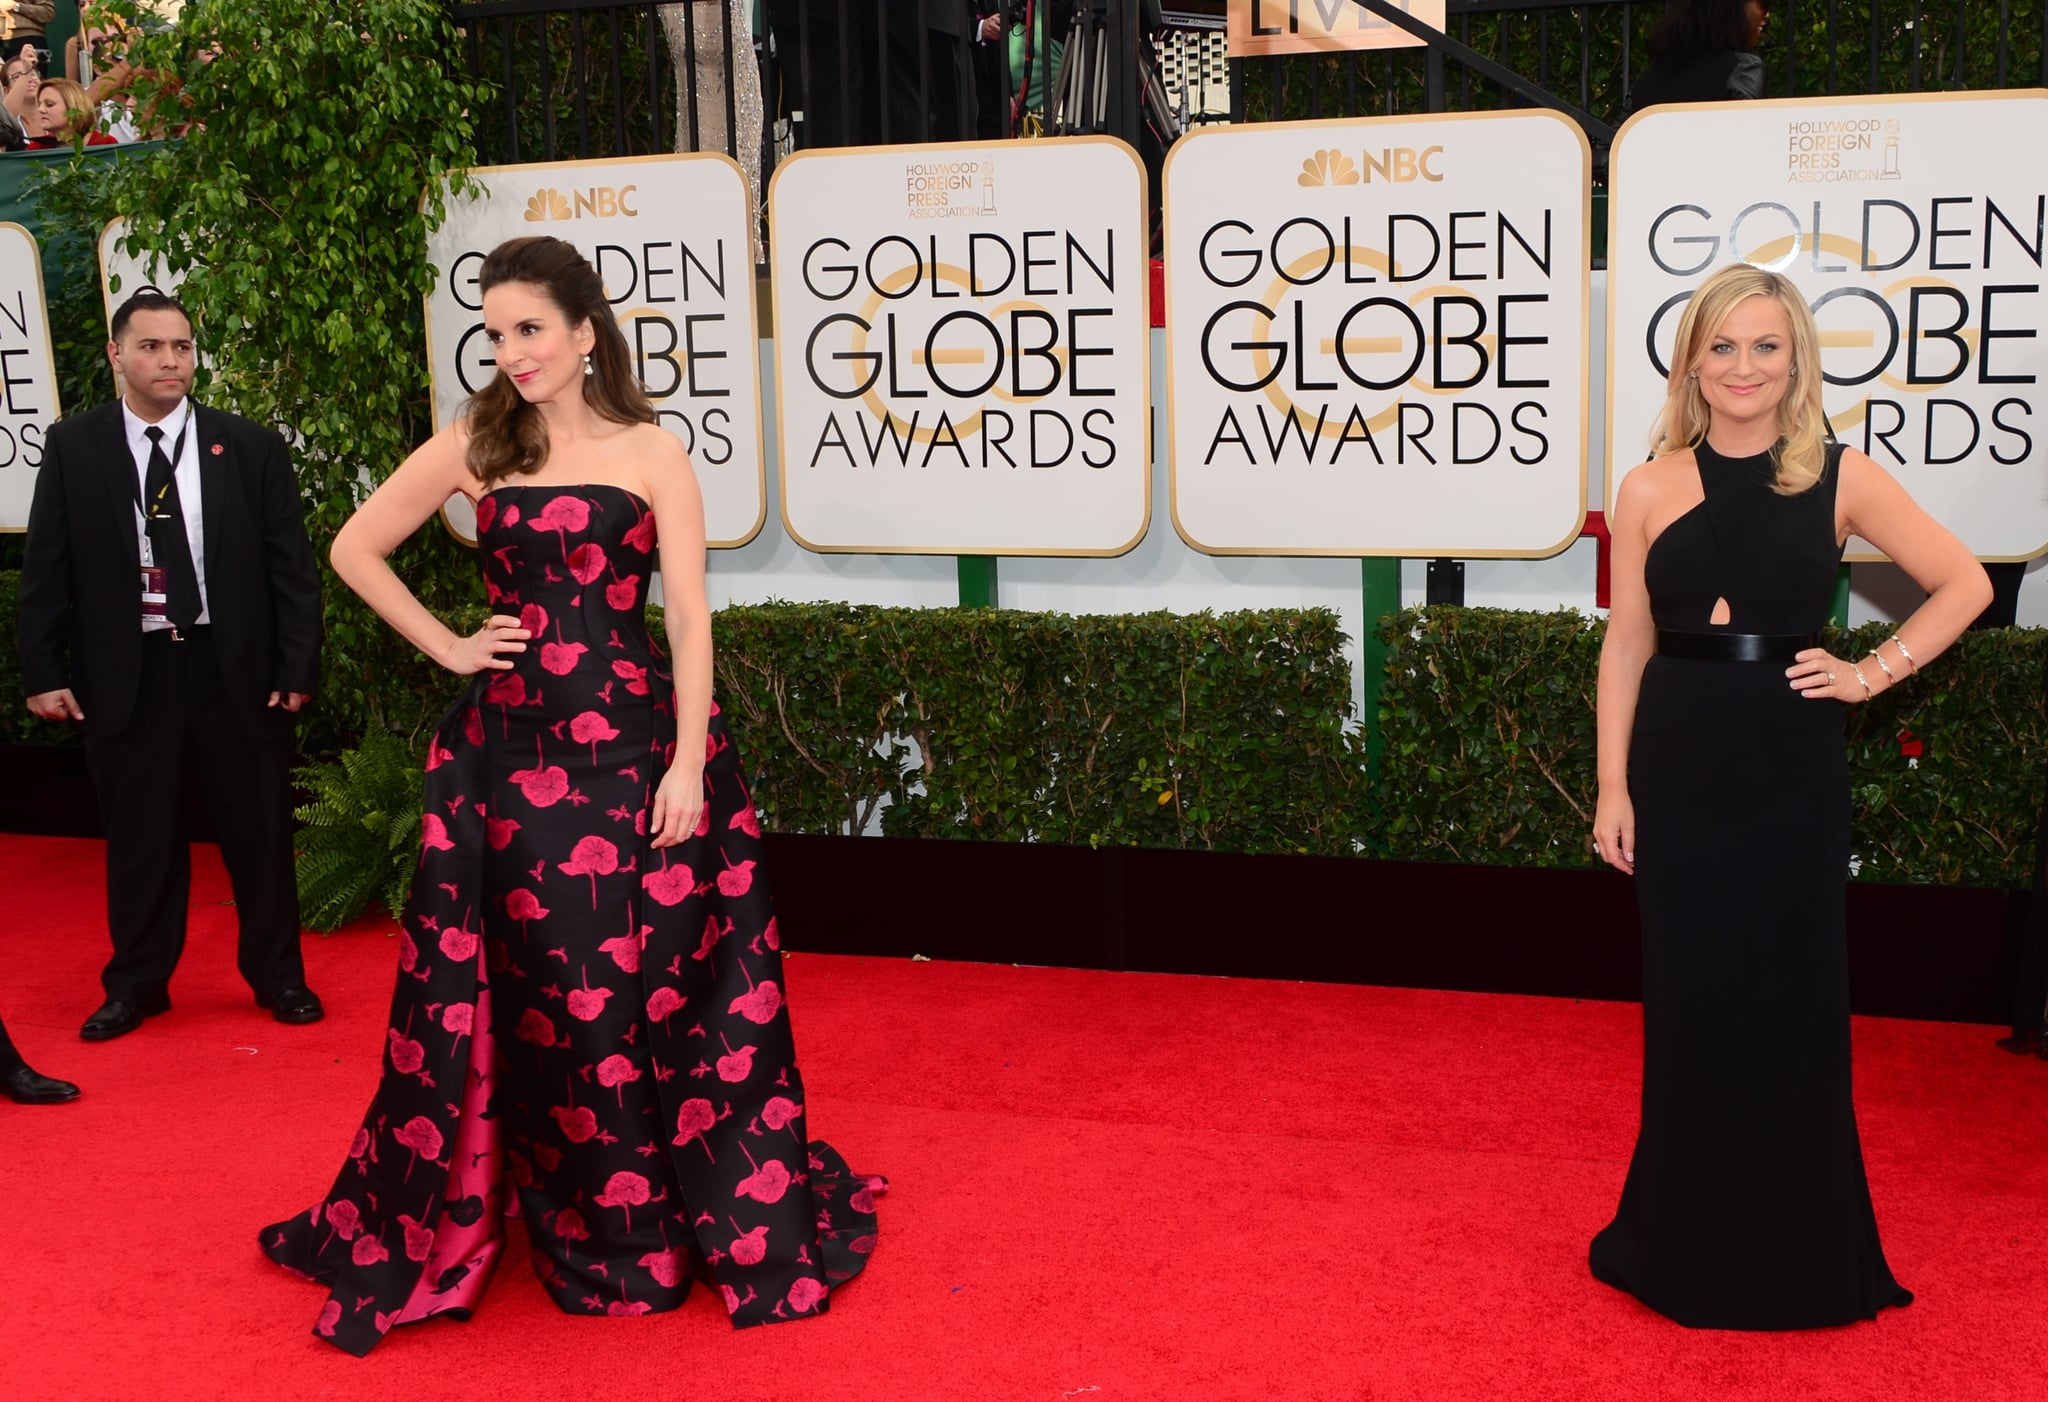 Hosts Tina Fey and Amy Poehler Separated For Solo Shots